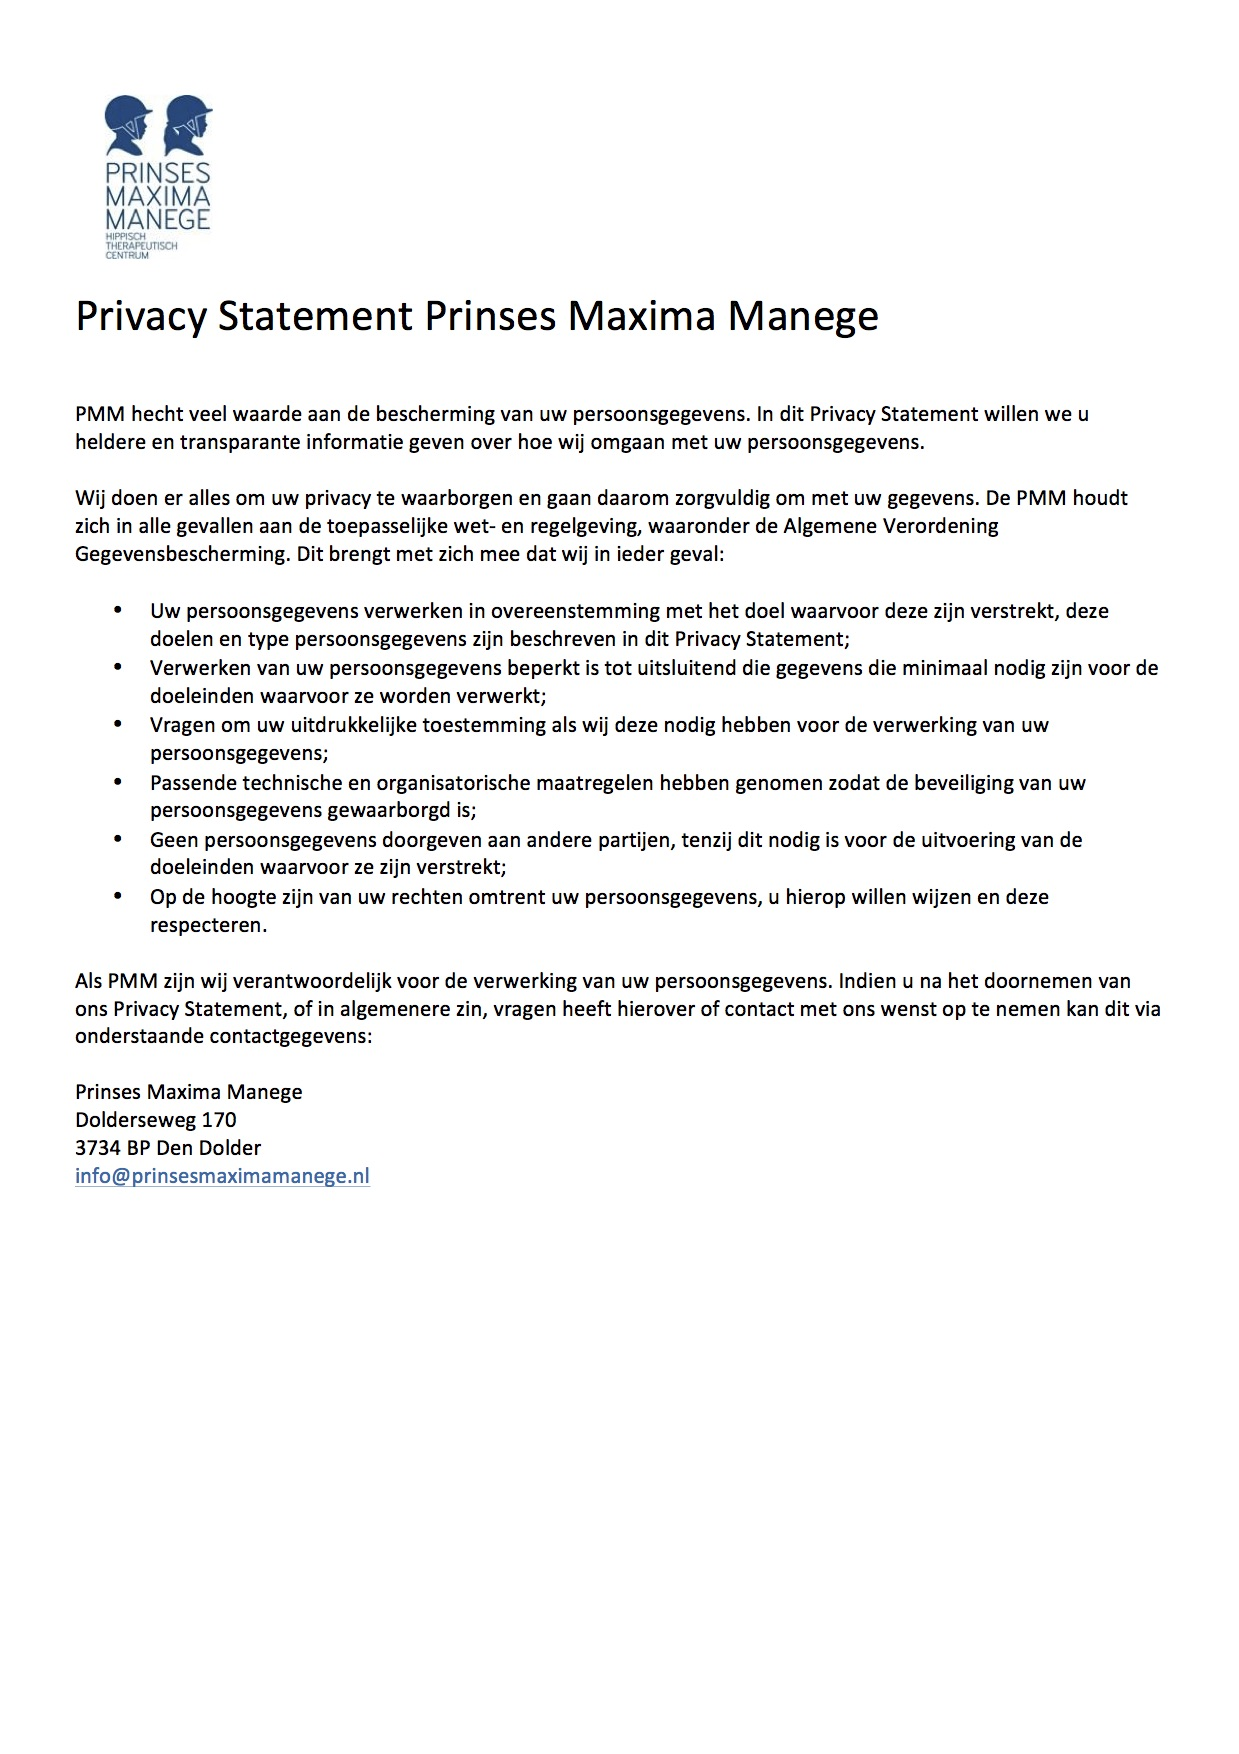 Privacy Statement PMM